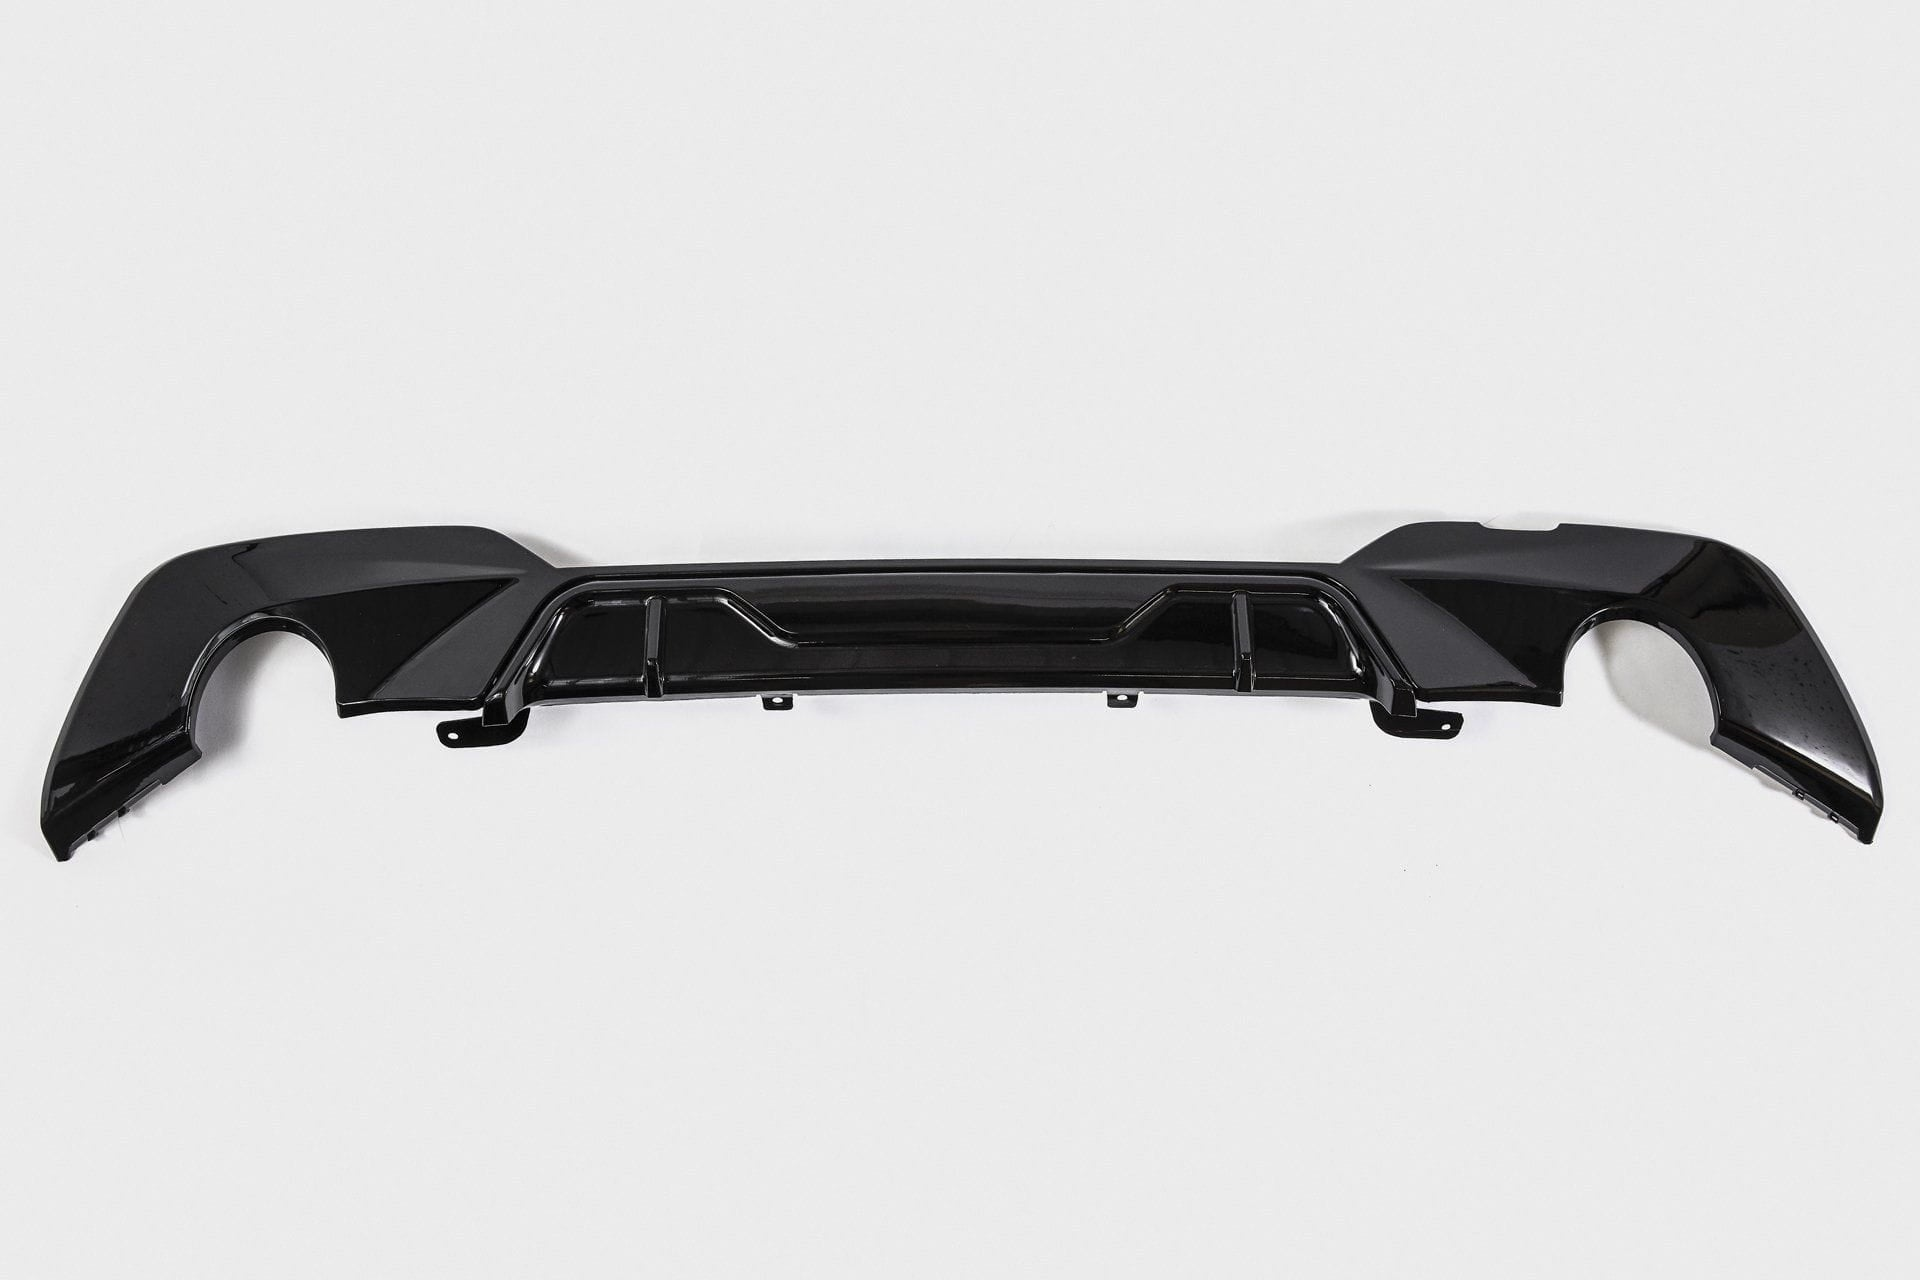 BMW 3 Series M Performance Style Rear Diffuser (G20/G21) - Single Tailpipe Twin Exit